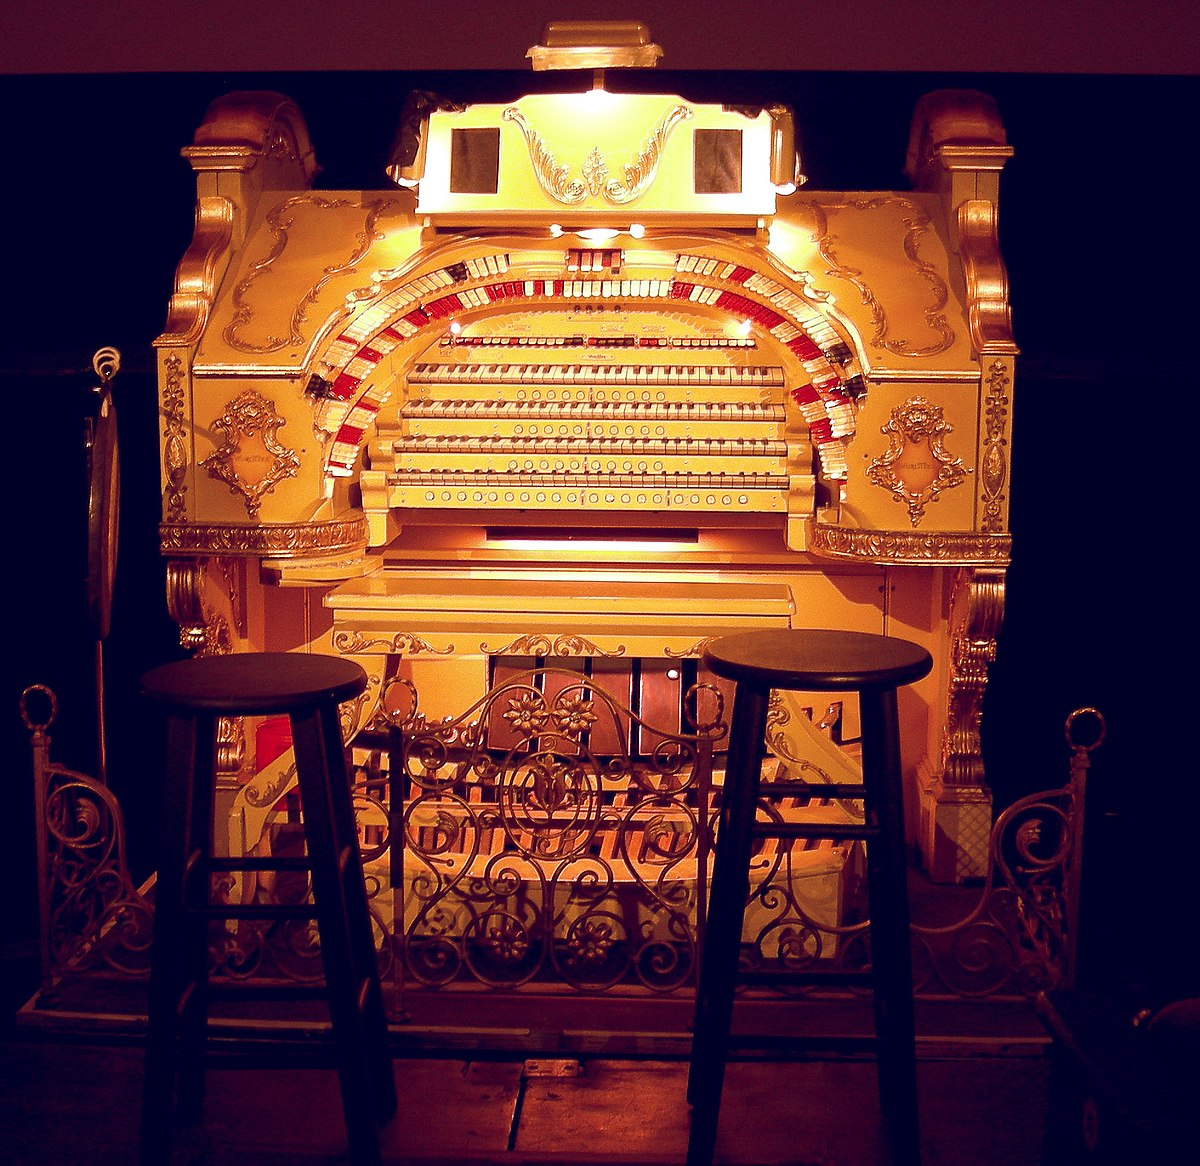 american theatre organ society